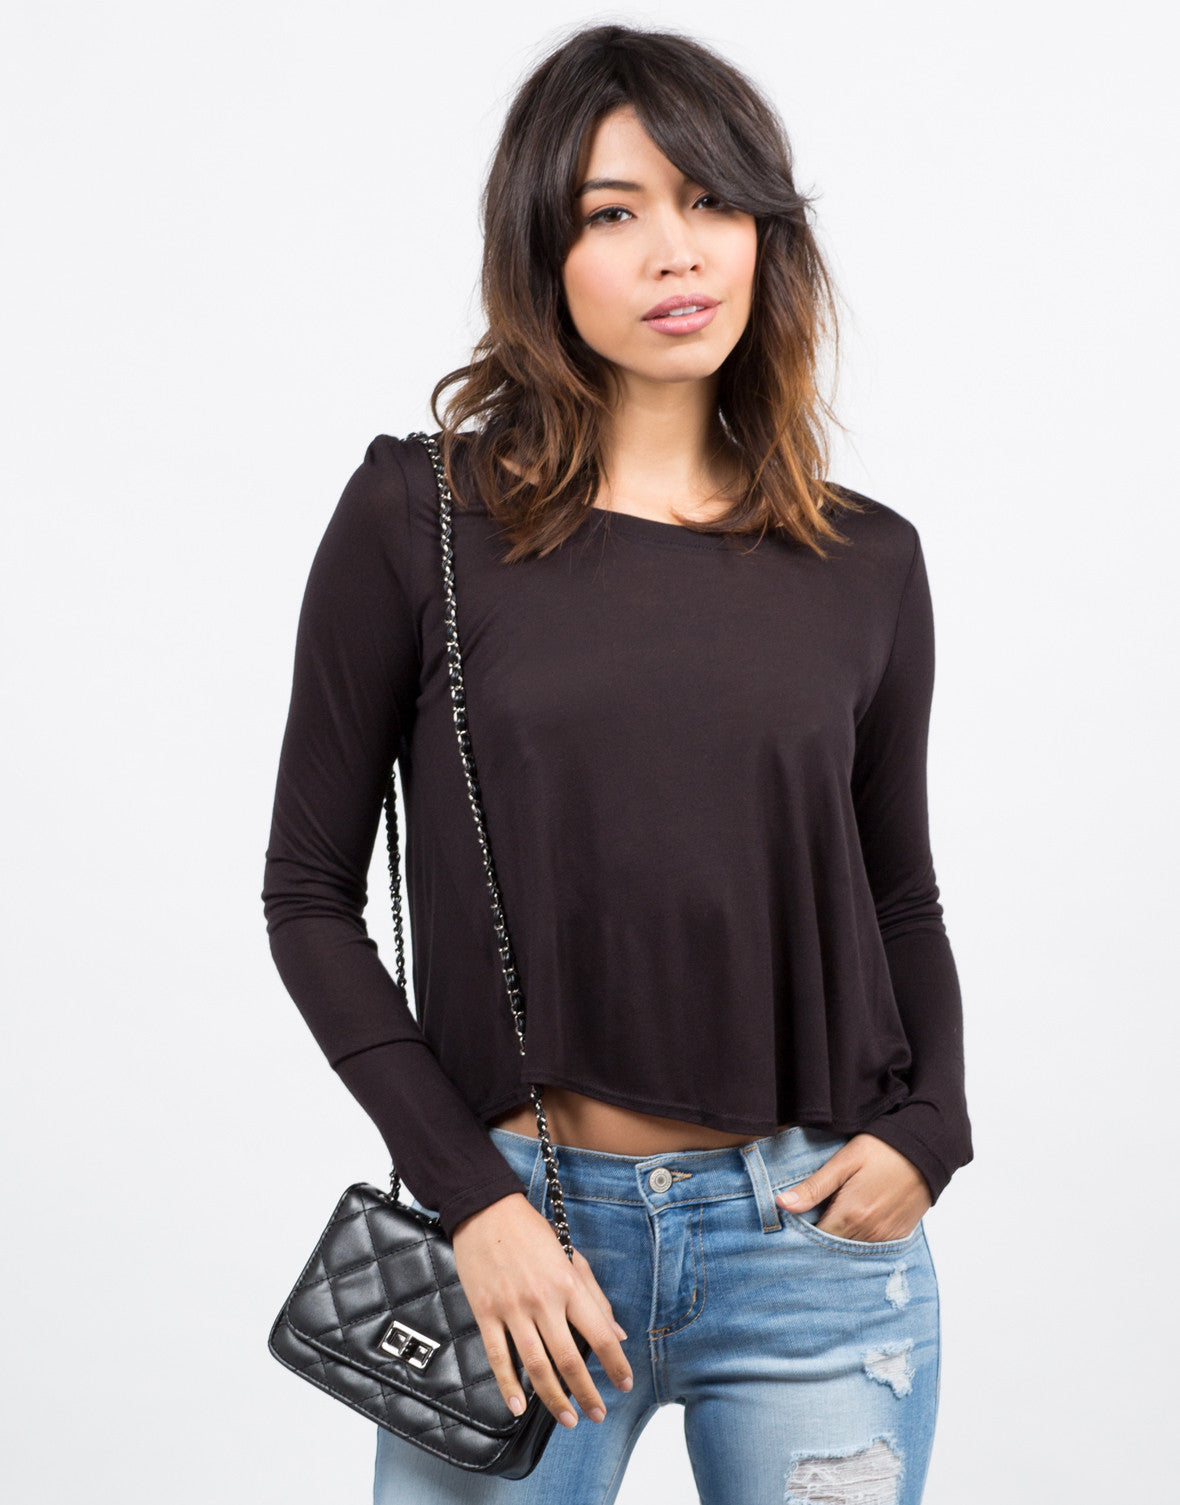 Simple Semi Sheer Lightweight Long Sleeve Top - 2020AVE